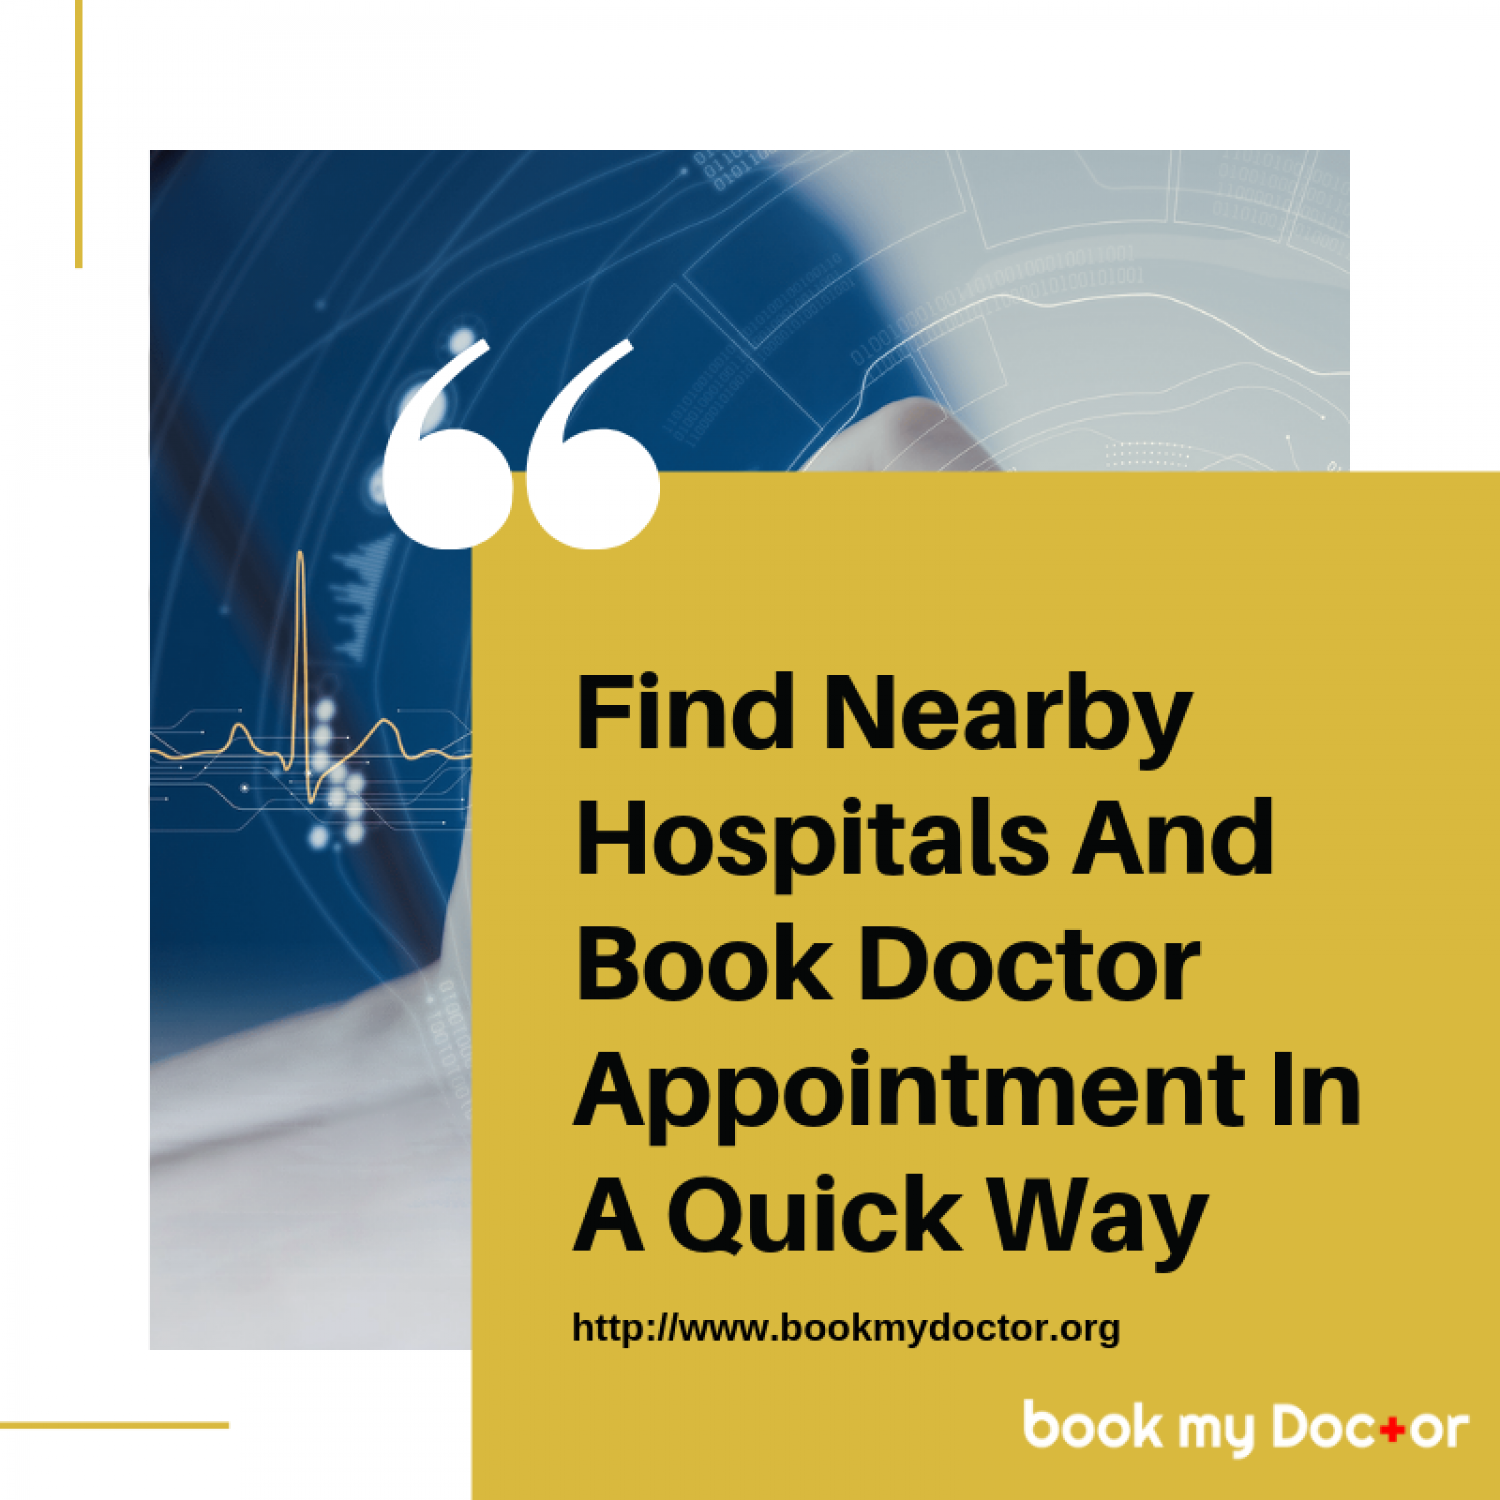 Book My Doctor: Consult doctor by booking an appointment online Infographic